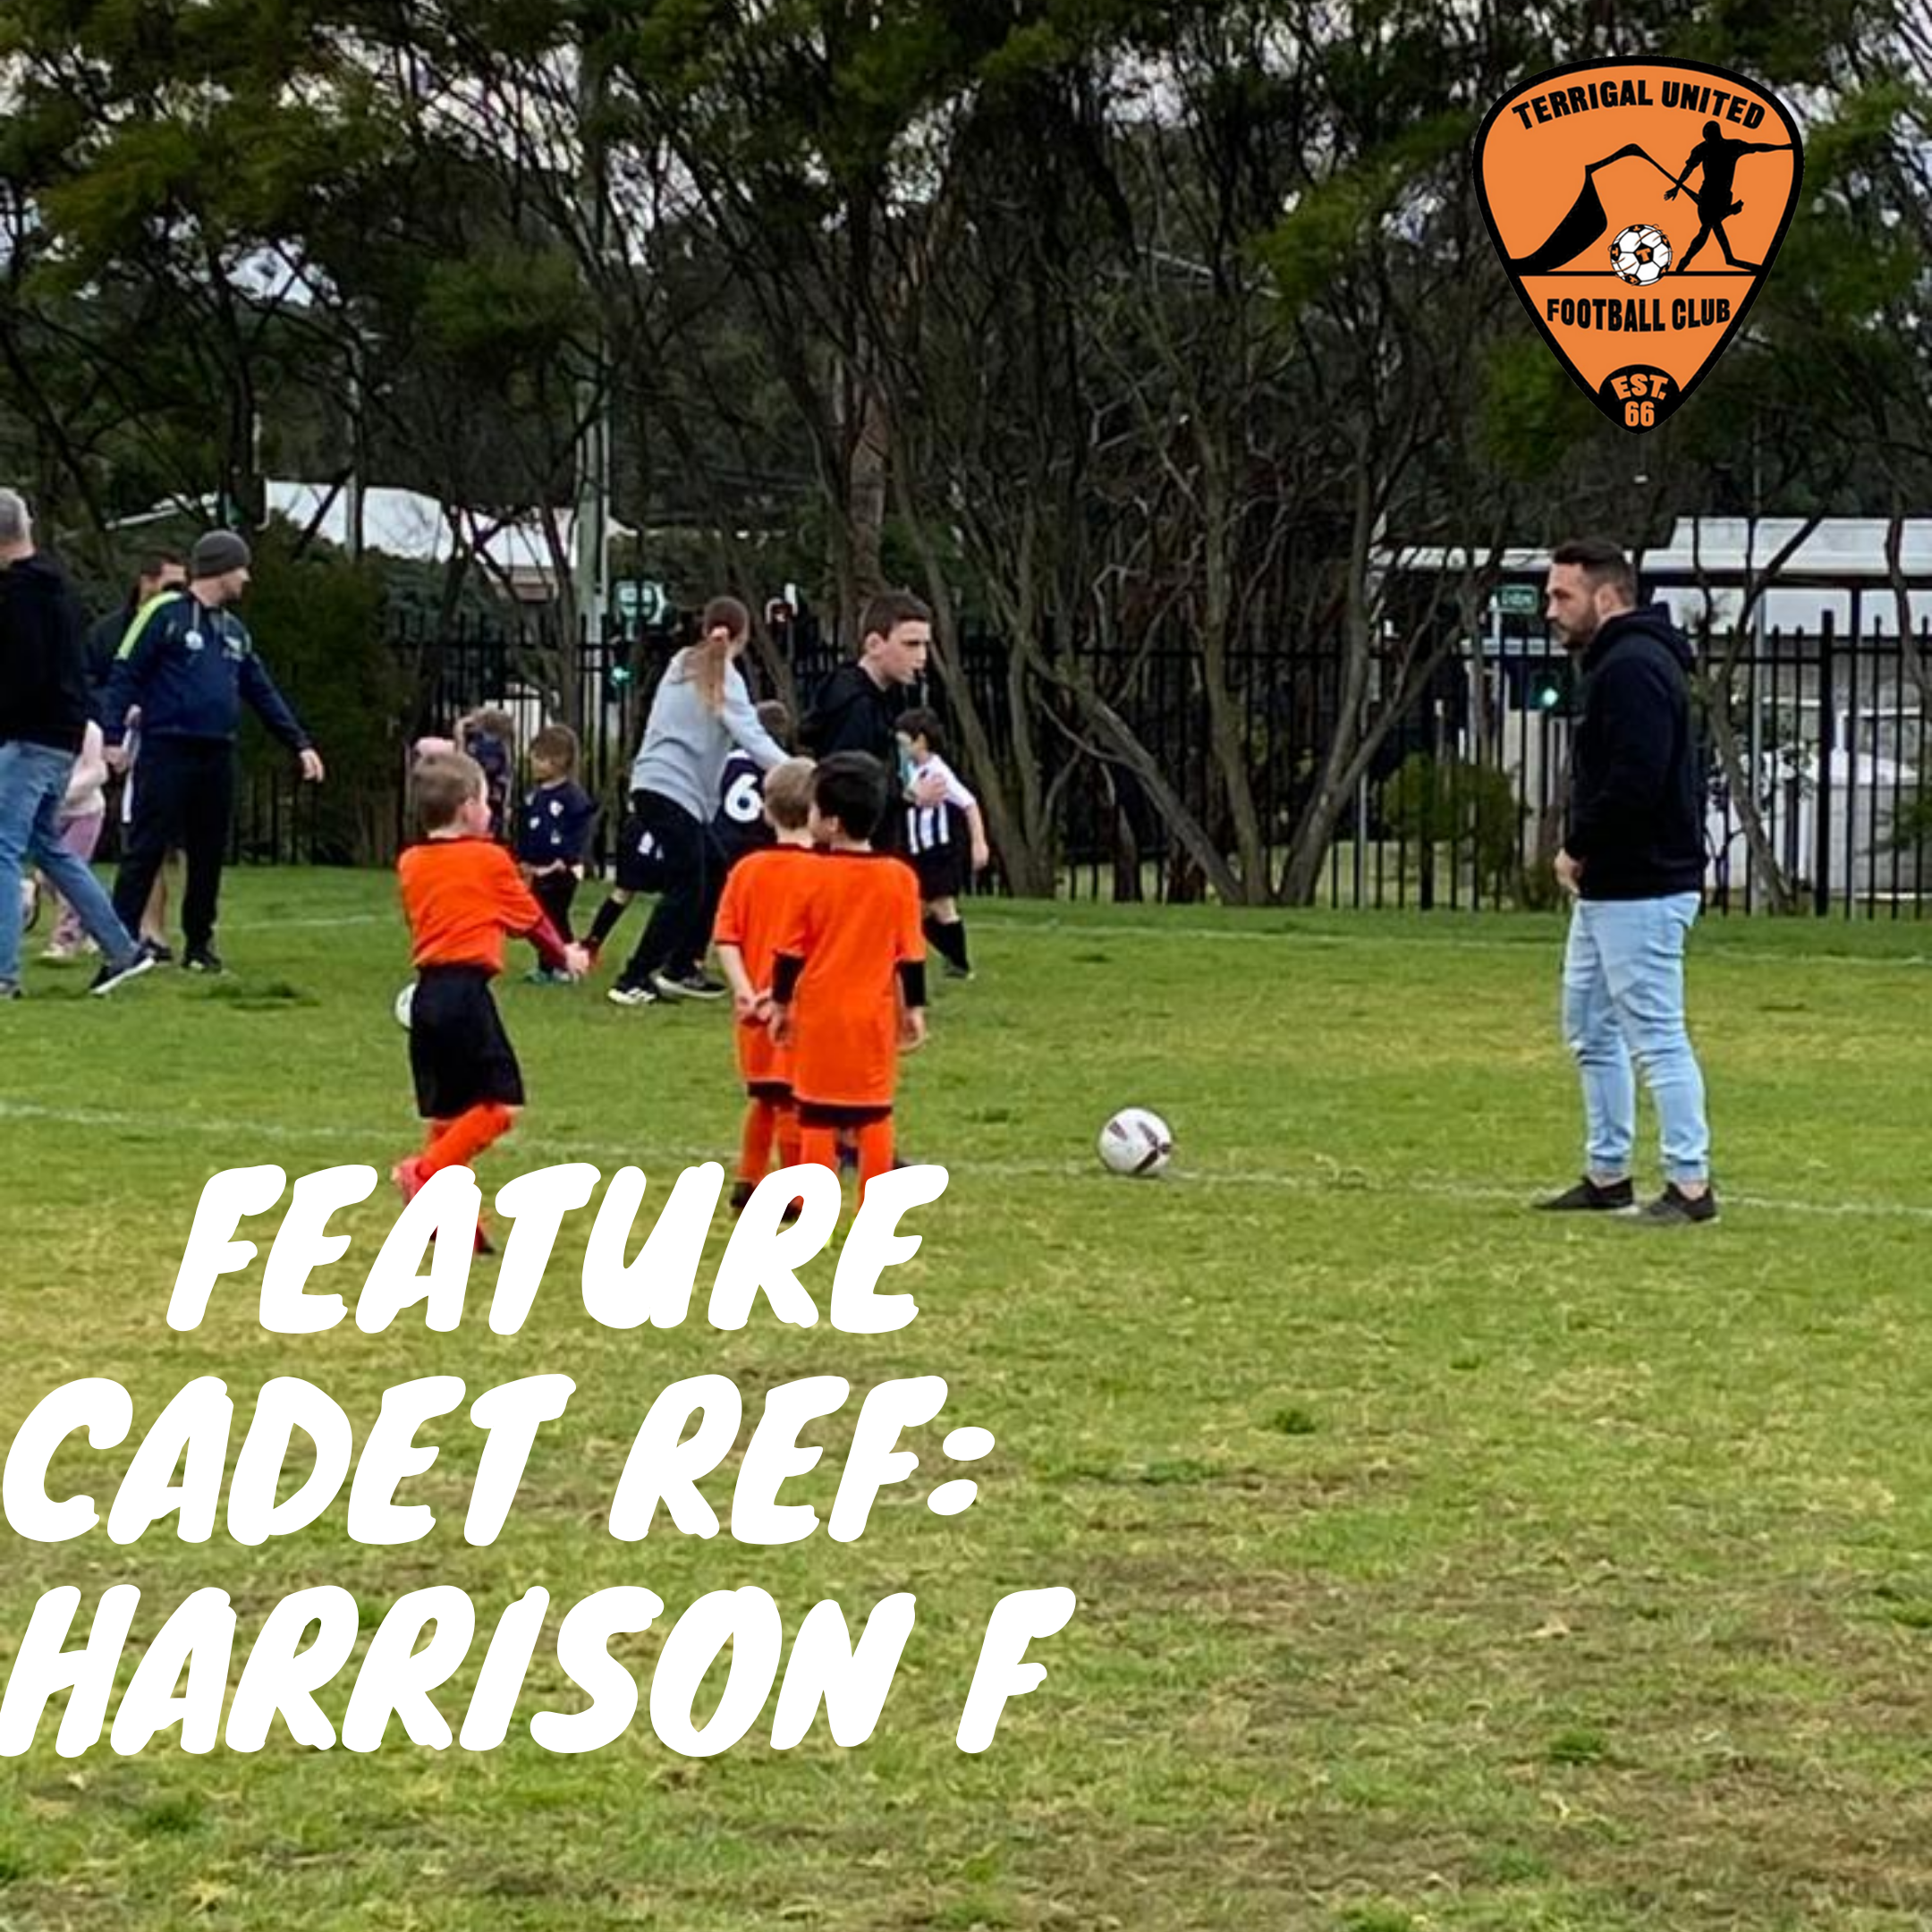 Feature Cadet Ref: Harrison F